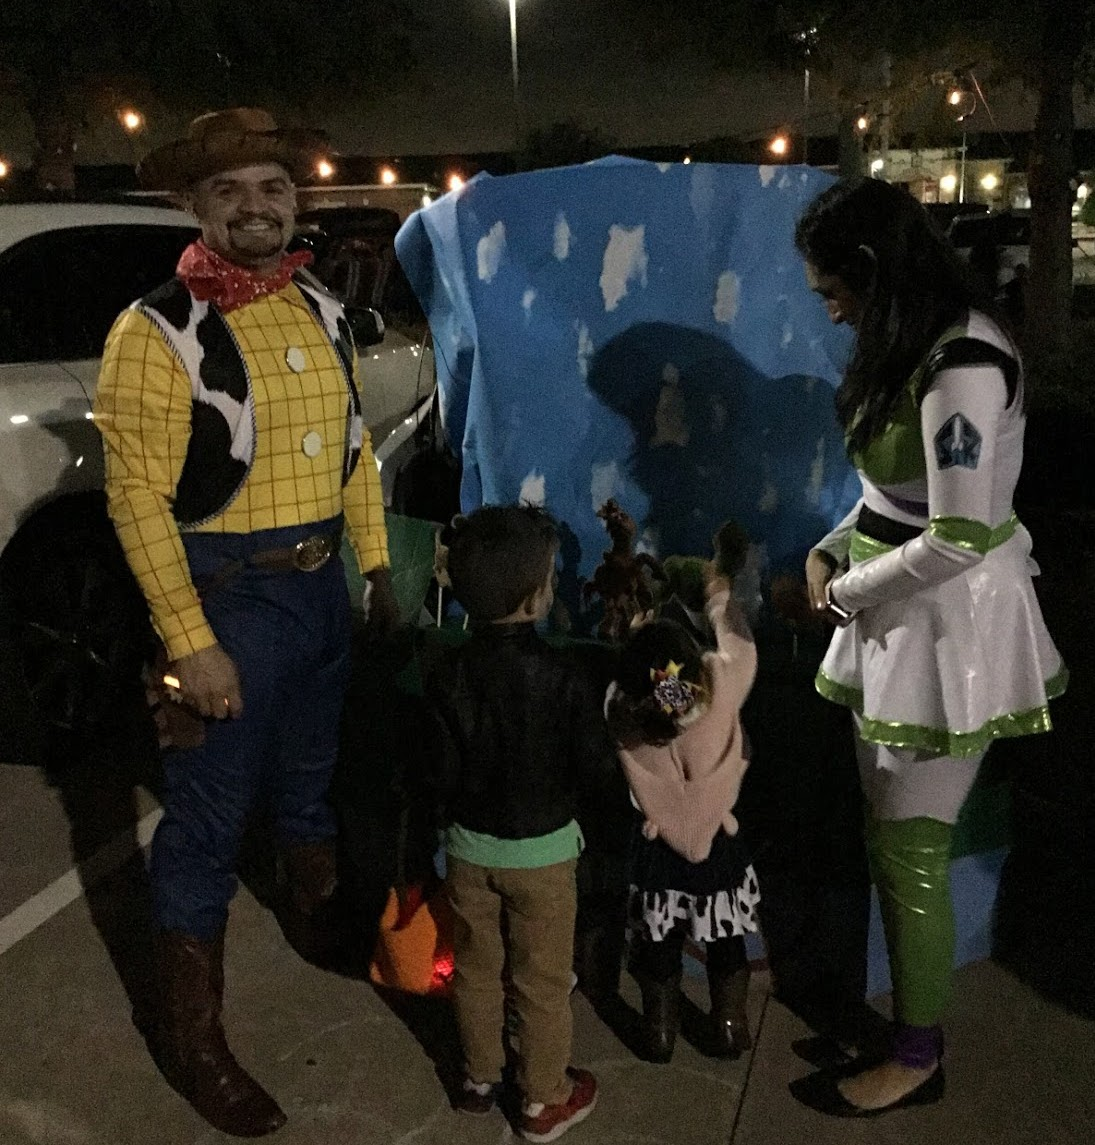 tunk-or-treat, trick-or-treating, family, daycare, child care, infant, toddler, preschool, prekindergarten, clear lake, 77062